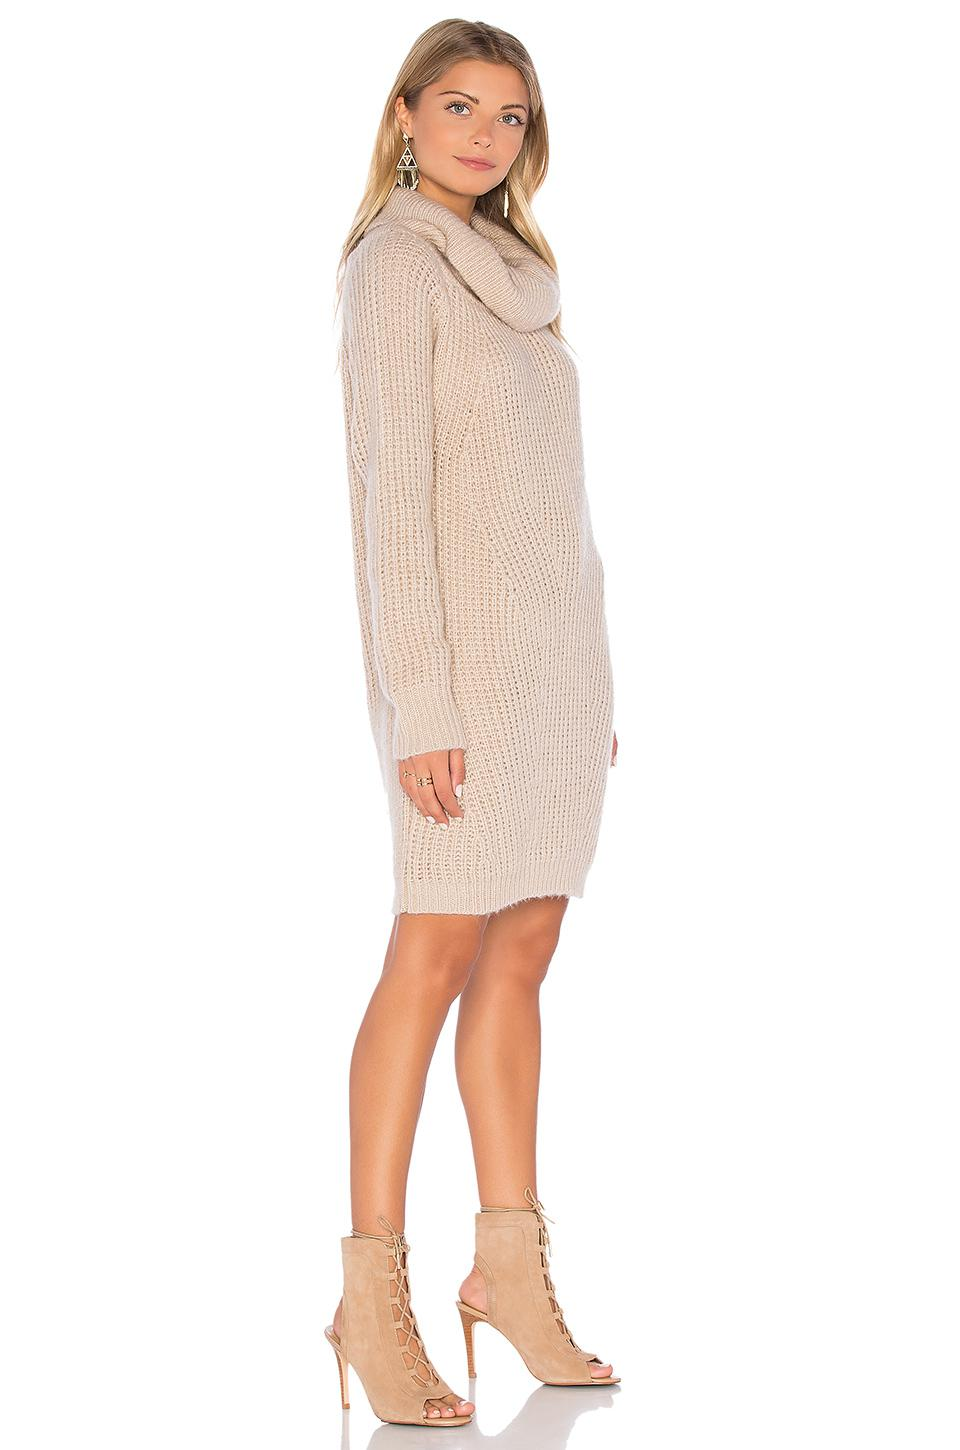 Generation Knit Sweater Dress in Blush MLM Label Outlet Order Online qFDHsNY5ZE